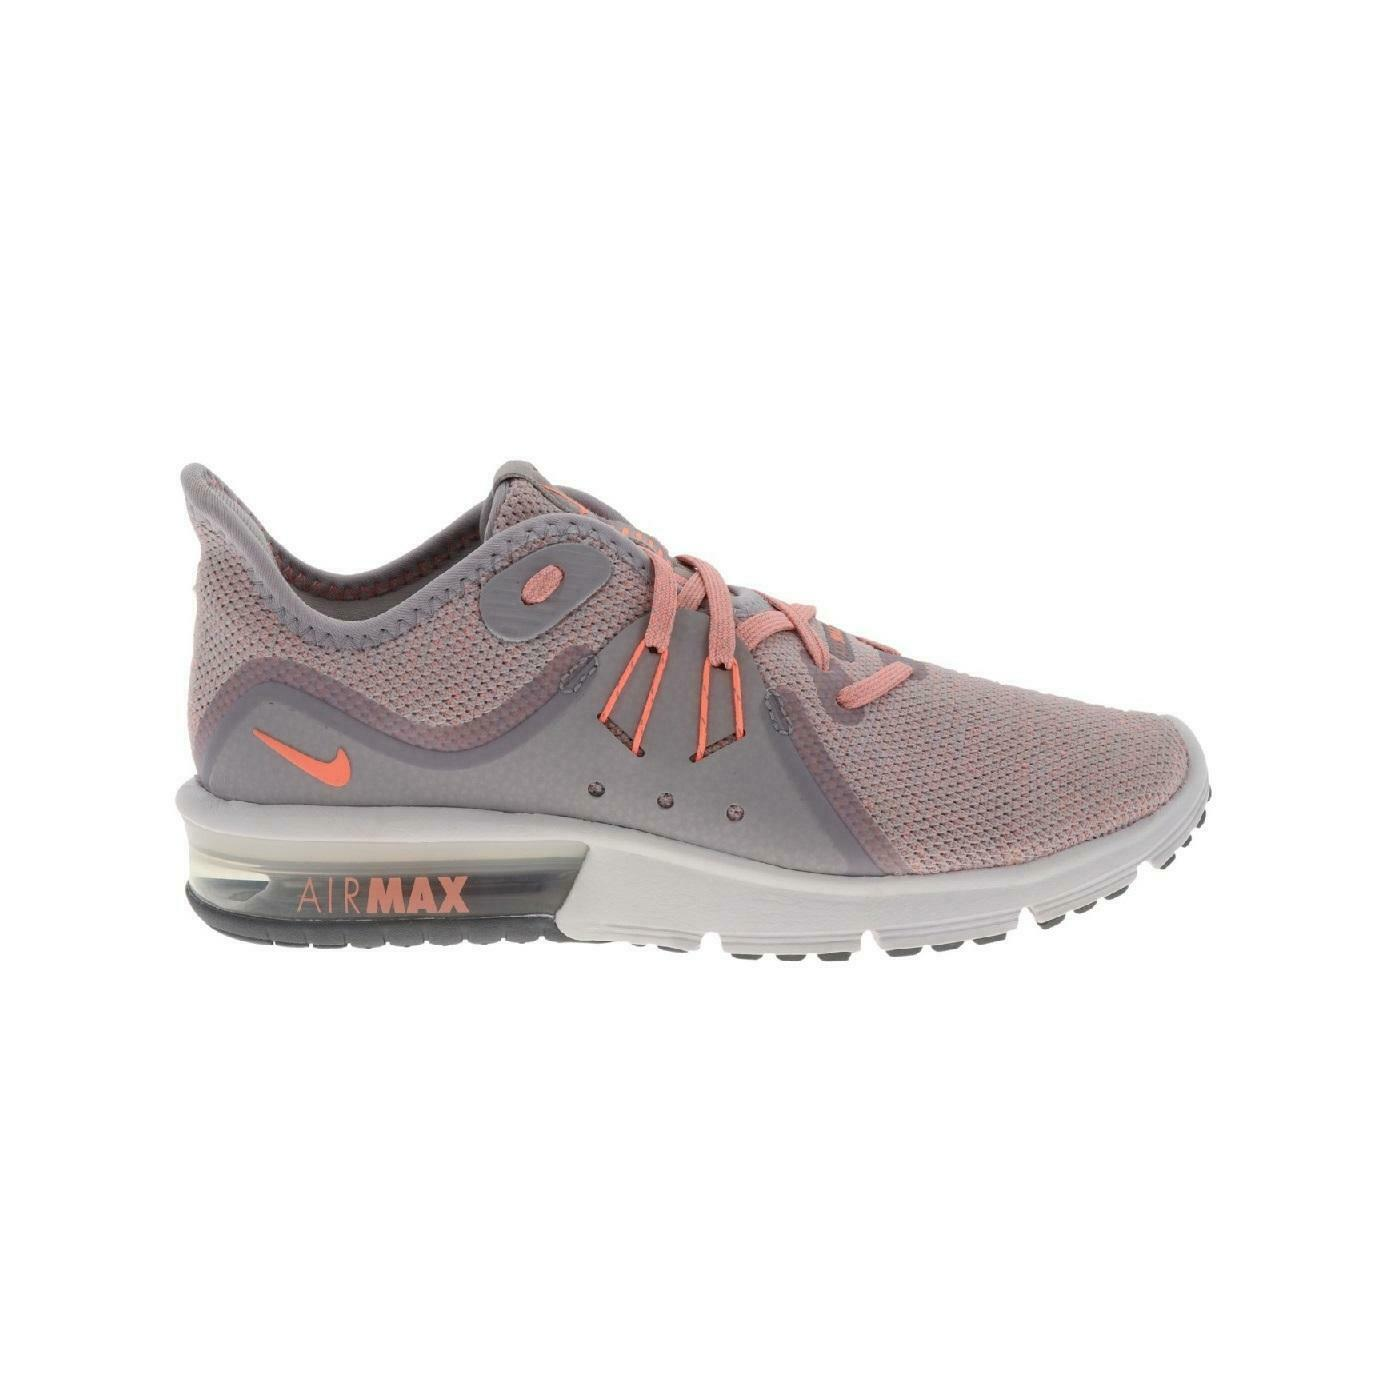 damen NIKE AIR MAX SEQUENT 3 Atmosphere grau Trainers 908993 016